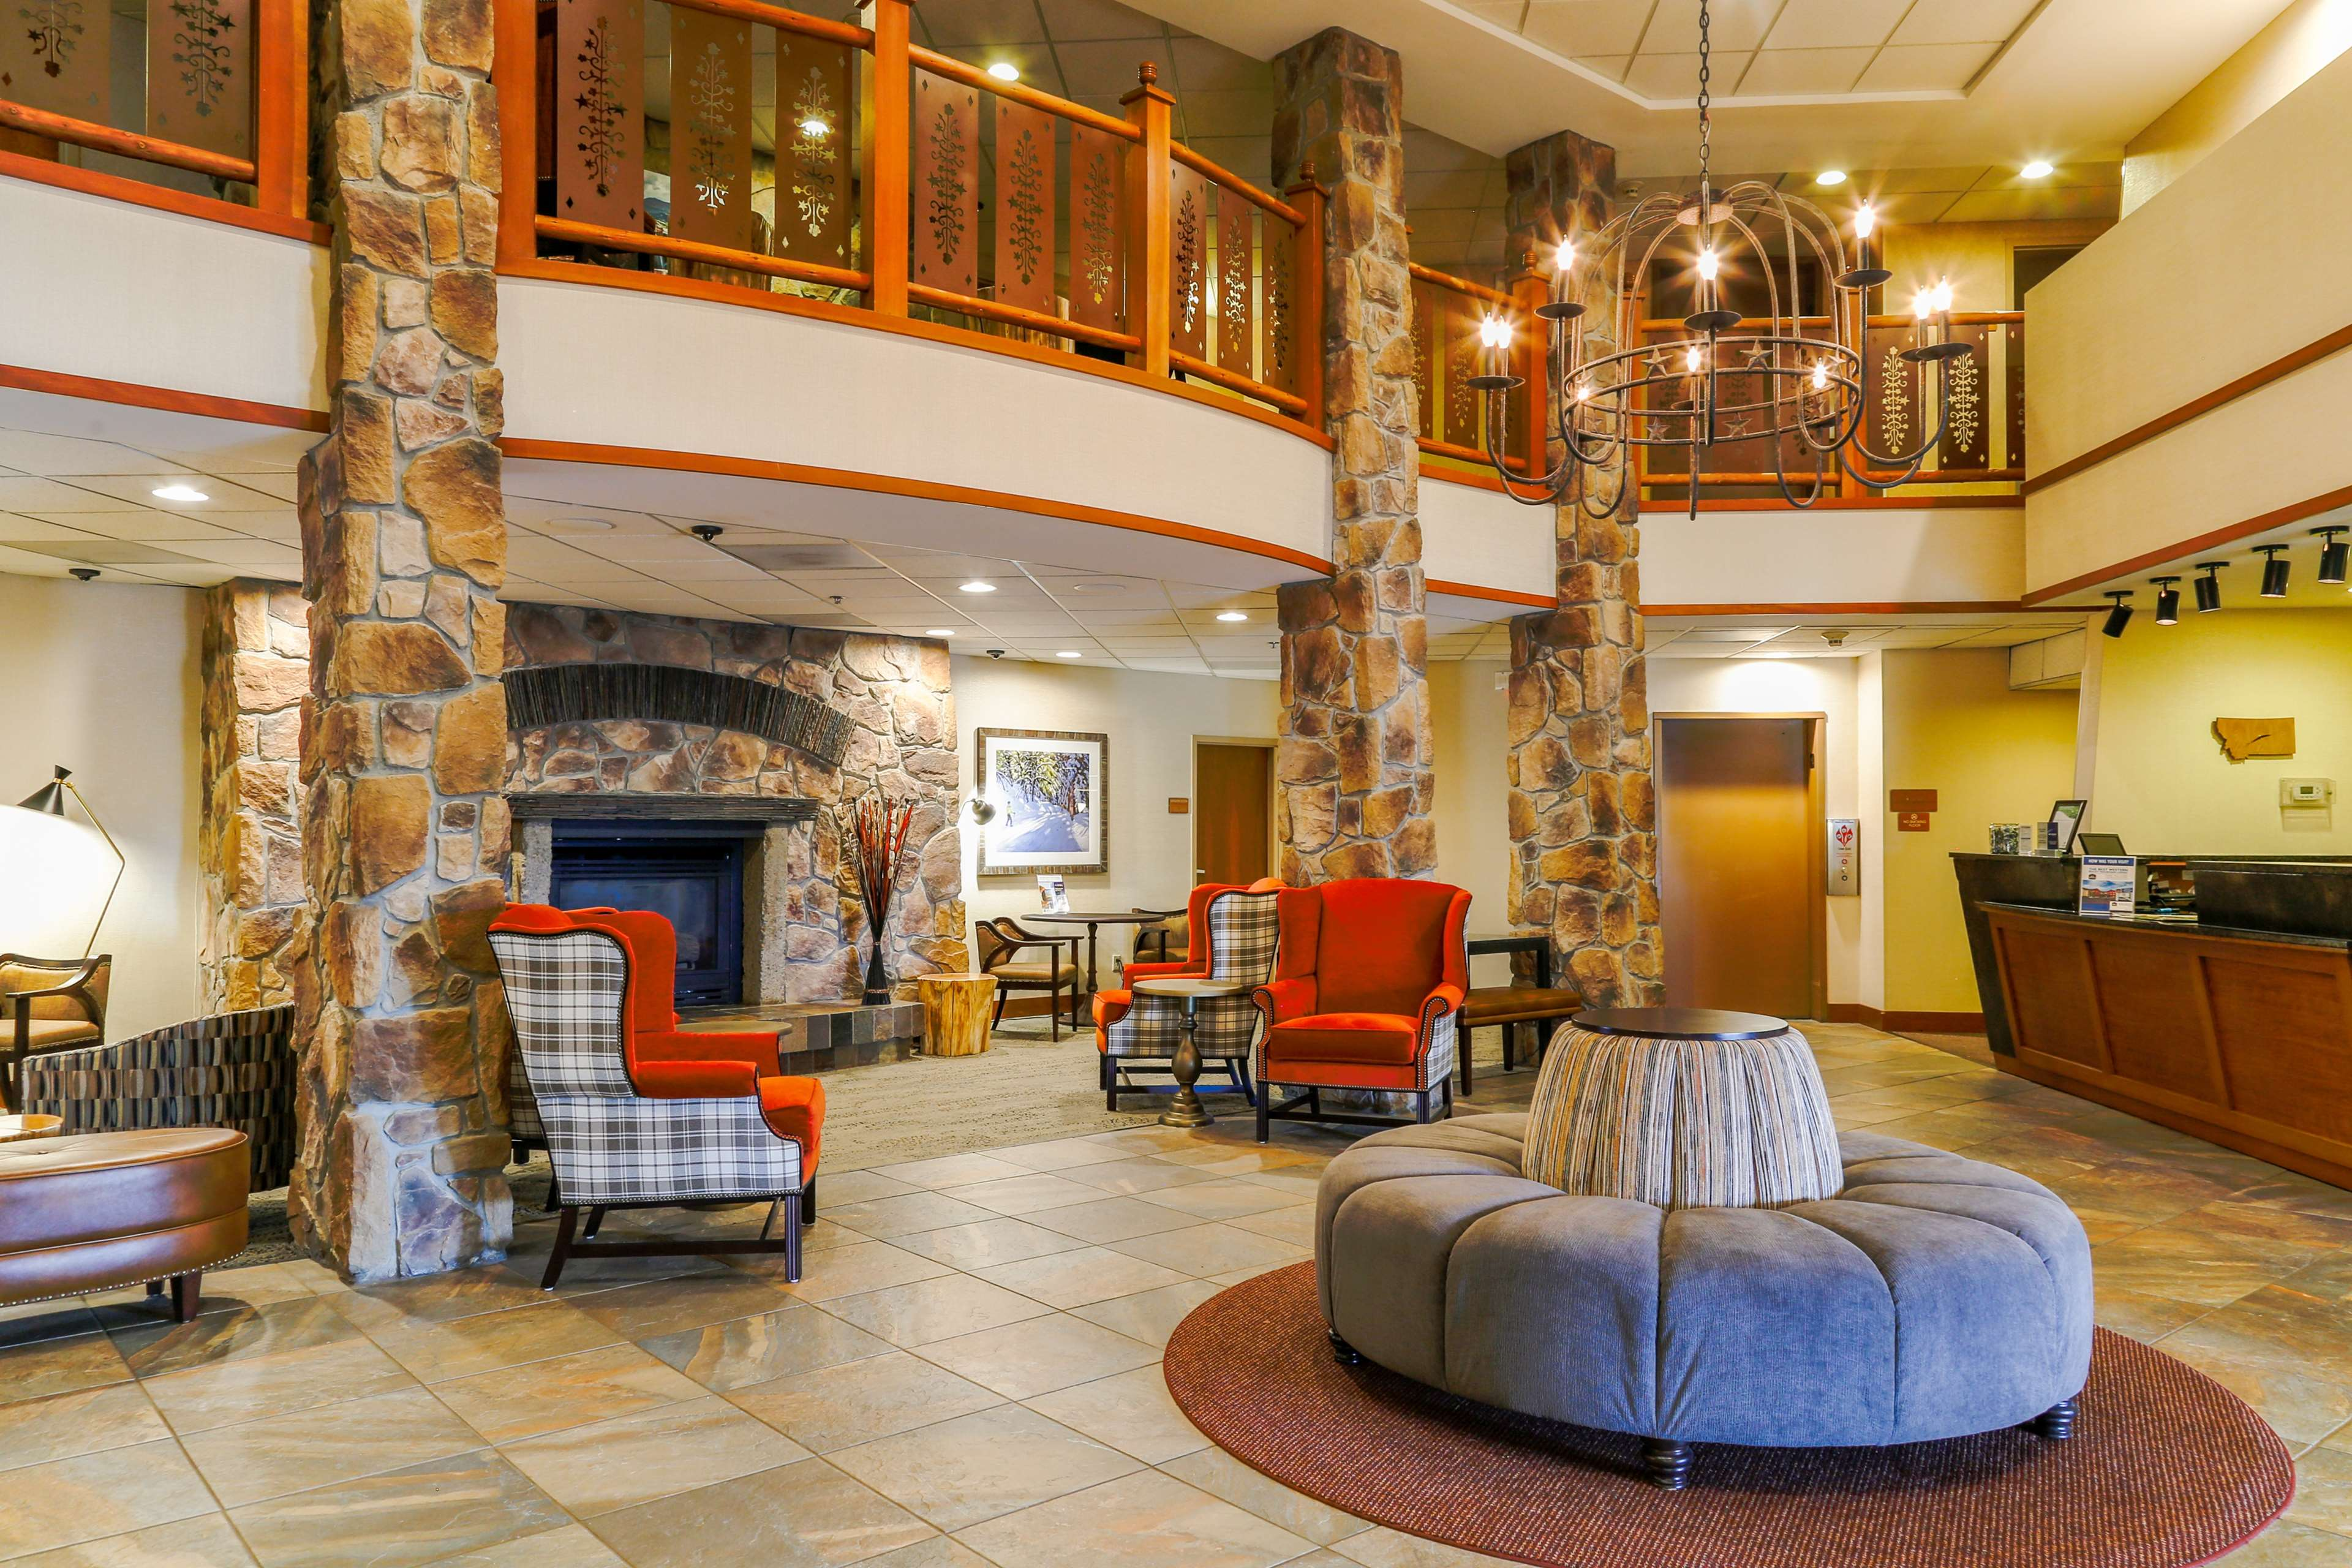 Best western rocky mountain lodge in whitefish mt 406 for Rocky mountain lodges